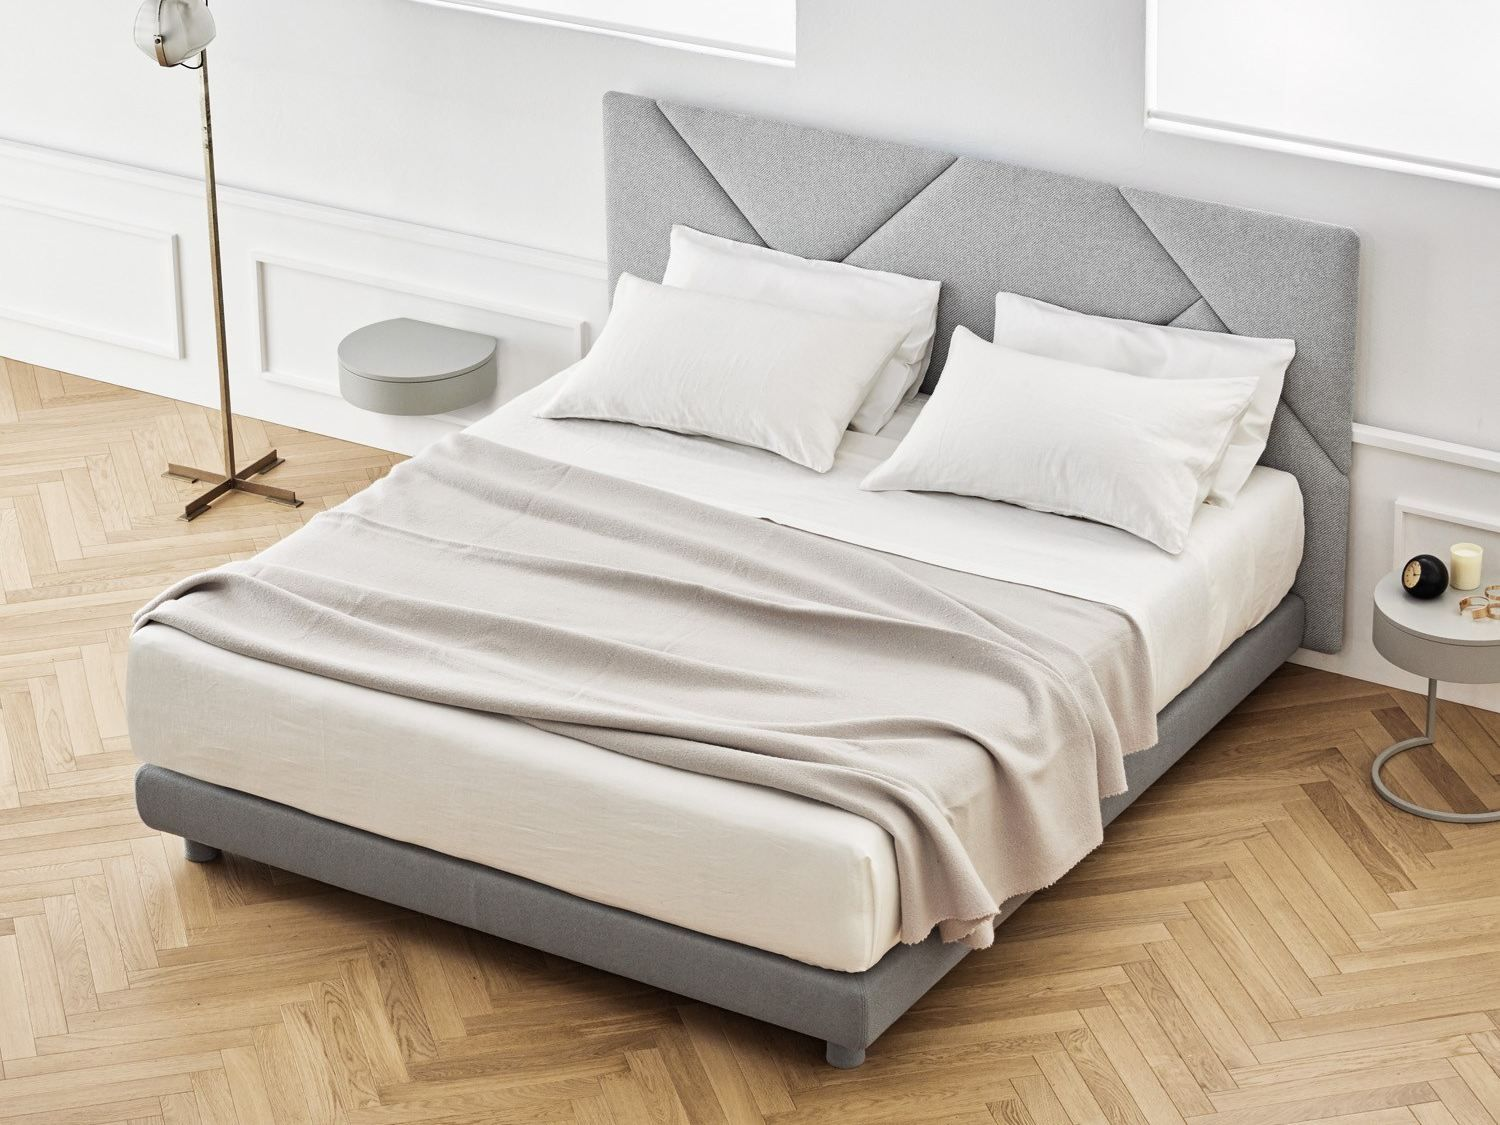 Buy online Opus By caccaro, fabric double bed with upholstered ...